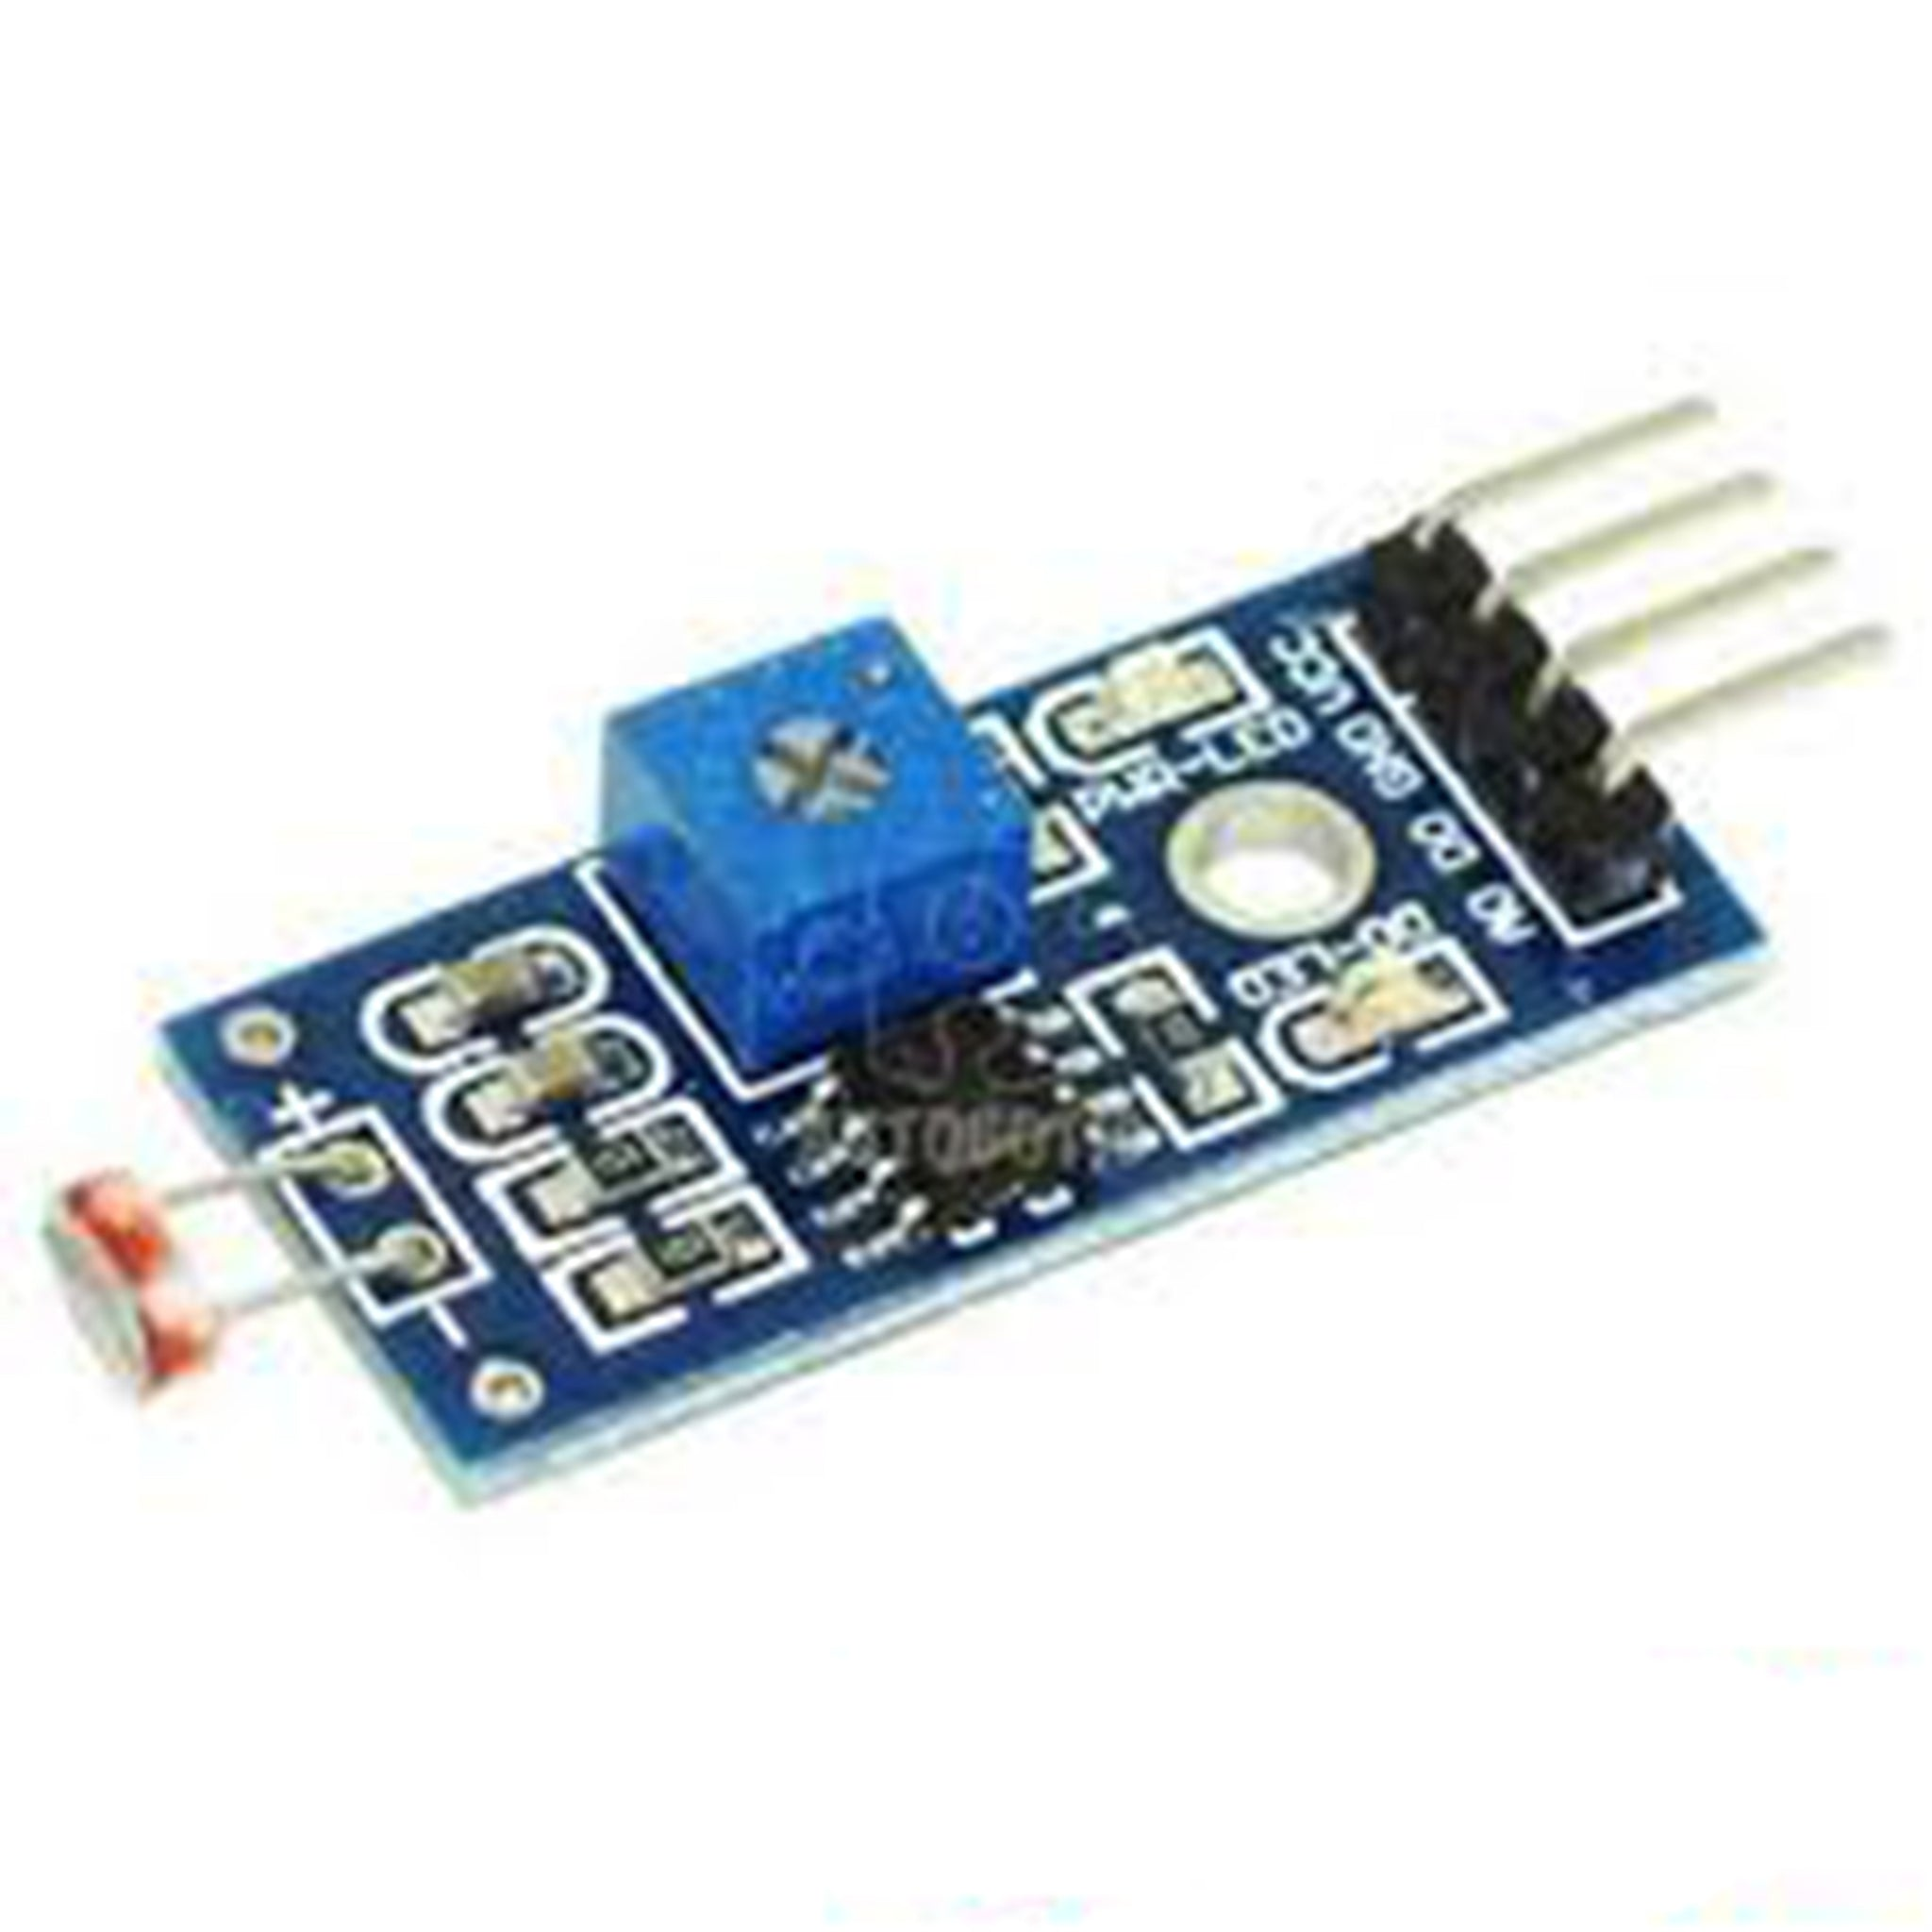 Photosensitive Sensor Module Light Detection (LDR) Module for Arduino DIY Kit